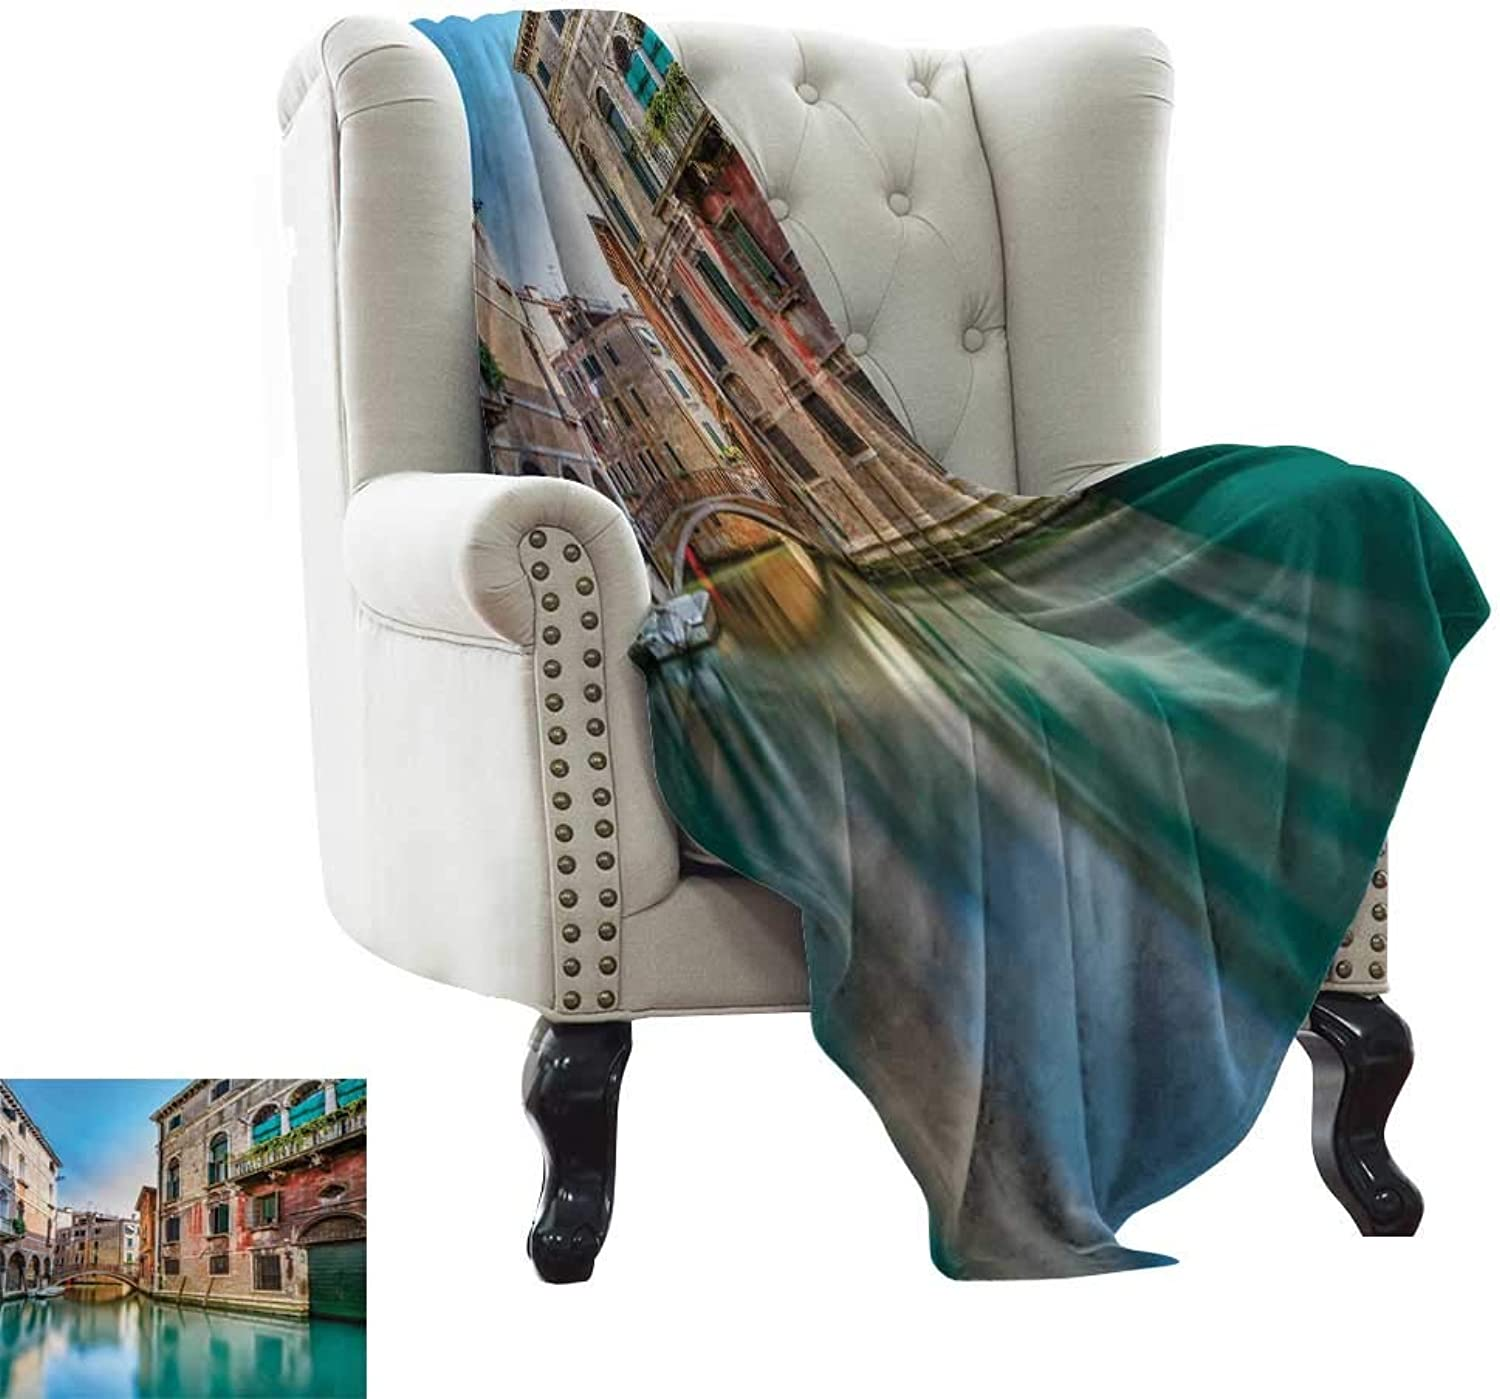 Venice,Bed Sheet Traditional Italian Water Canal Romantic Cityscape Famous Travel Destination 70 x50  Super Soft Boys Warm Blanket Teal Red Grey